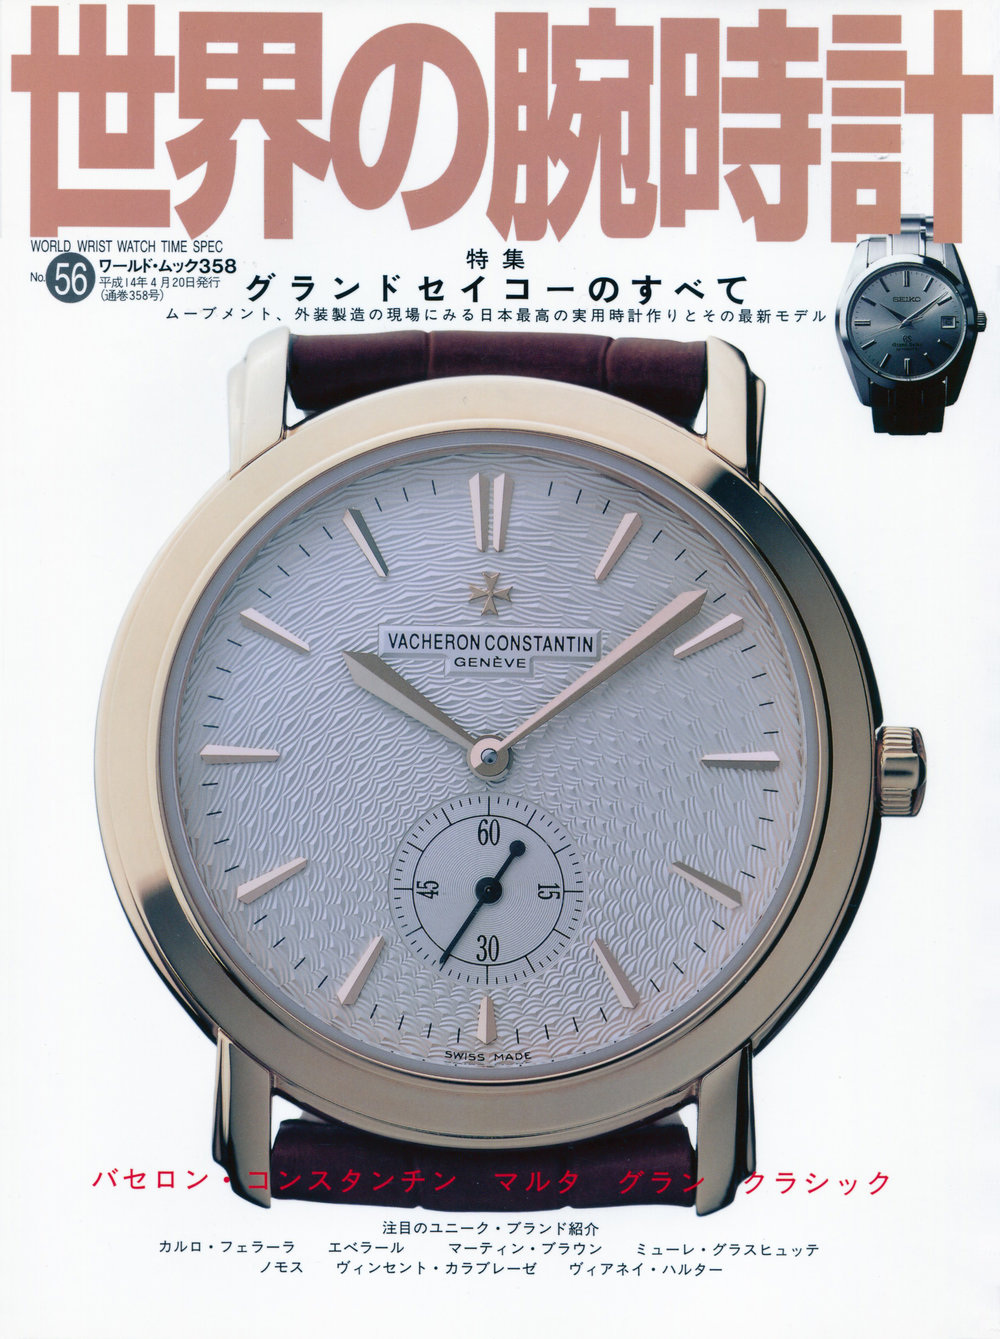 Cover - World Wrist Watch Time Spec No. 56